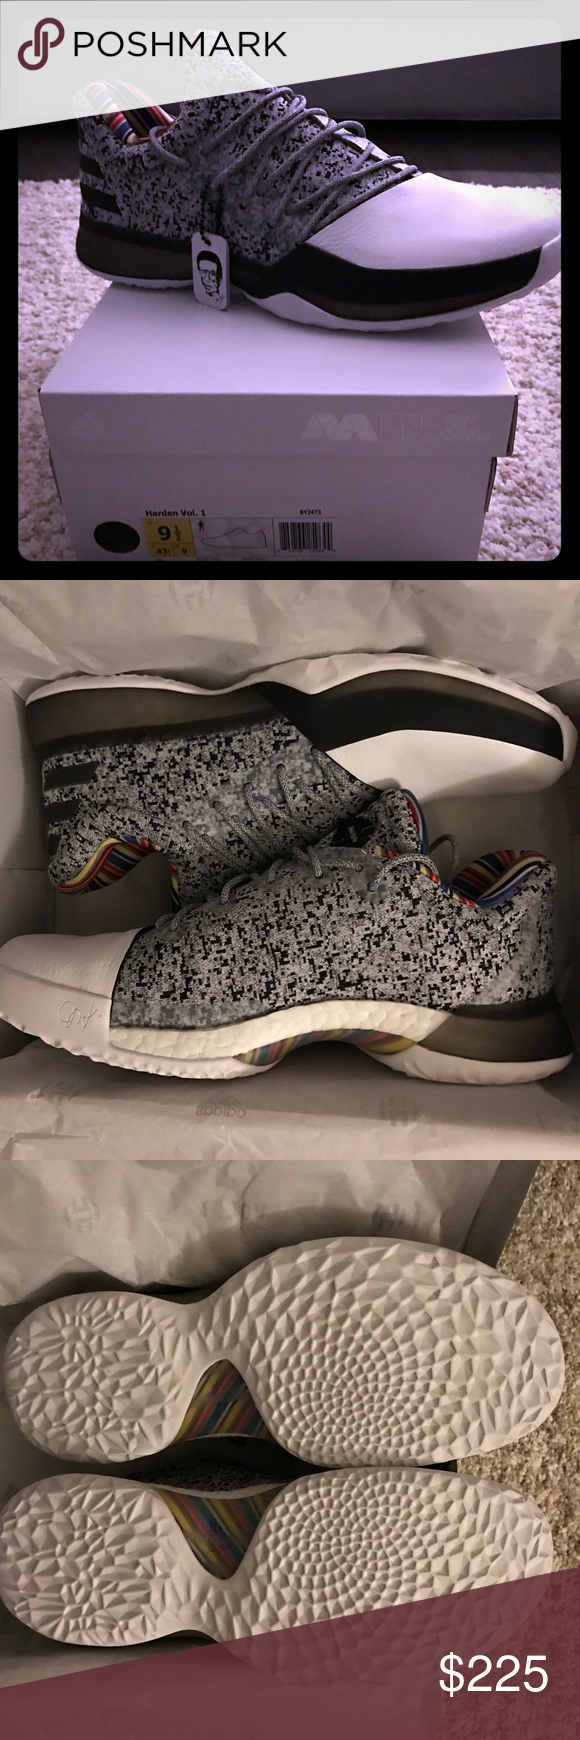 the latest 94ad1 87157 Adidas Harden Vol. 1 Arthur Ashe Tribute Pack BRAND NEW Adidas Harden Vol. 1